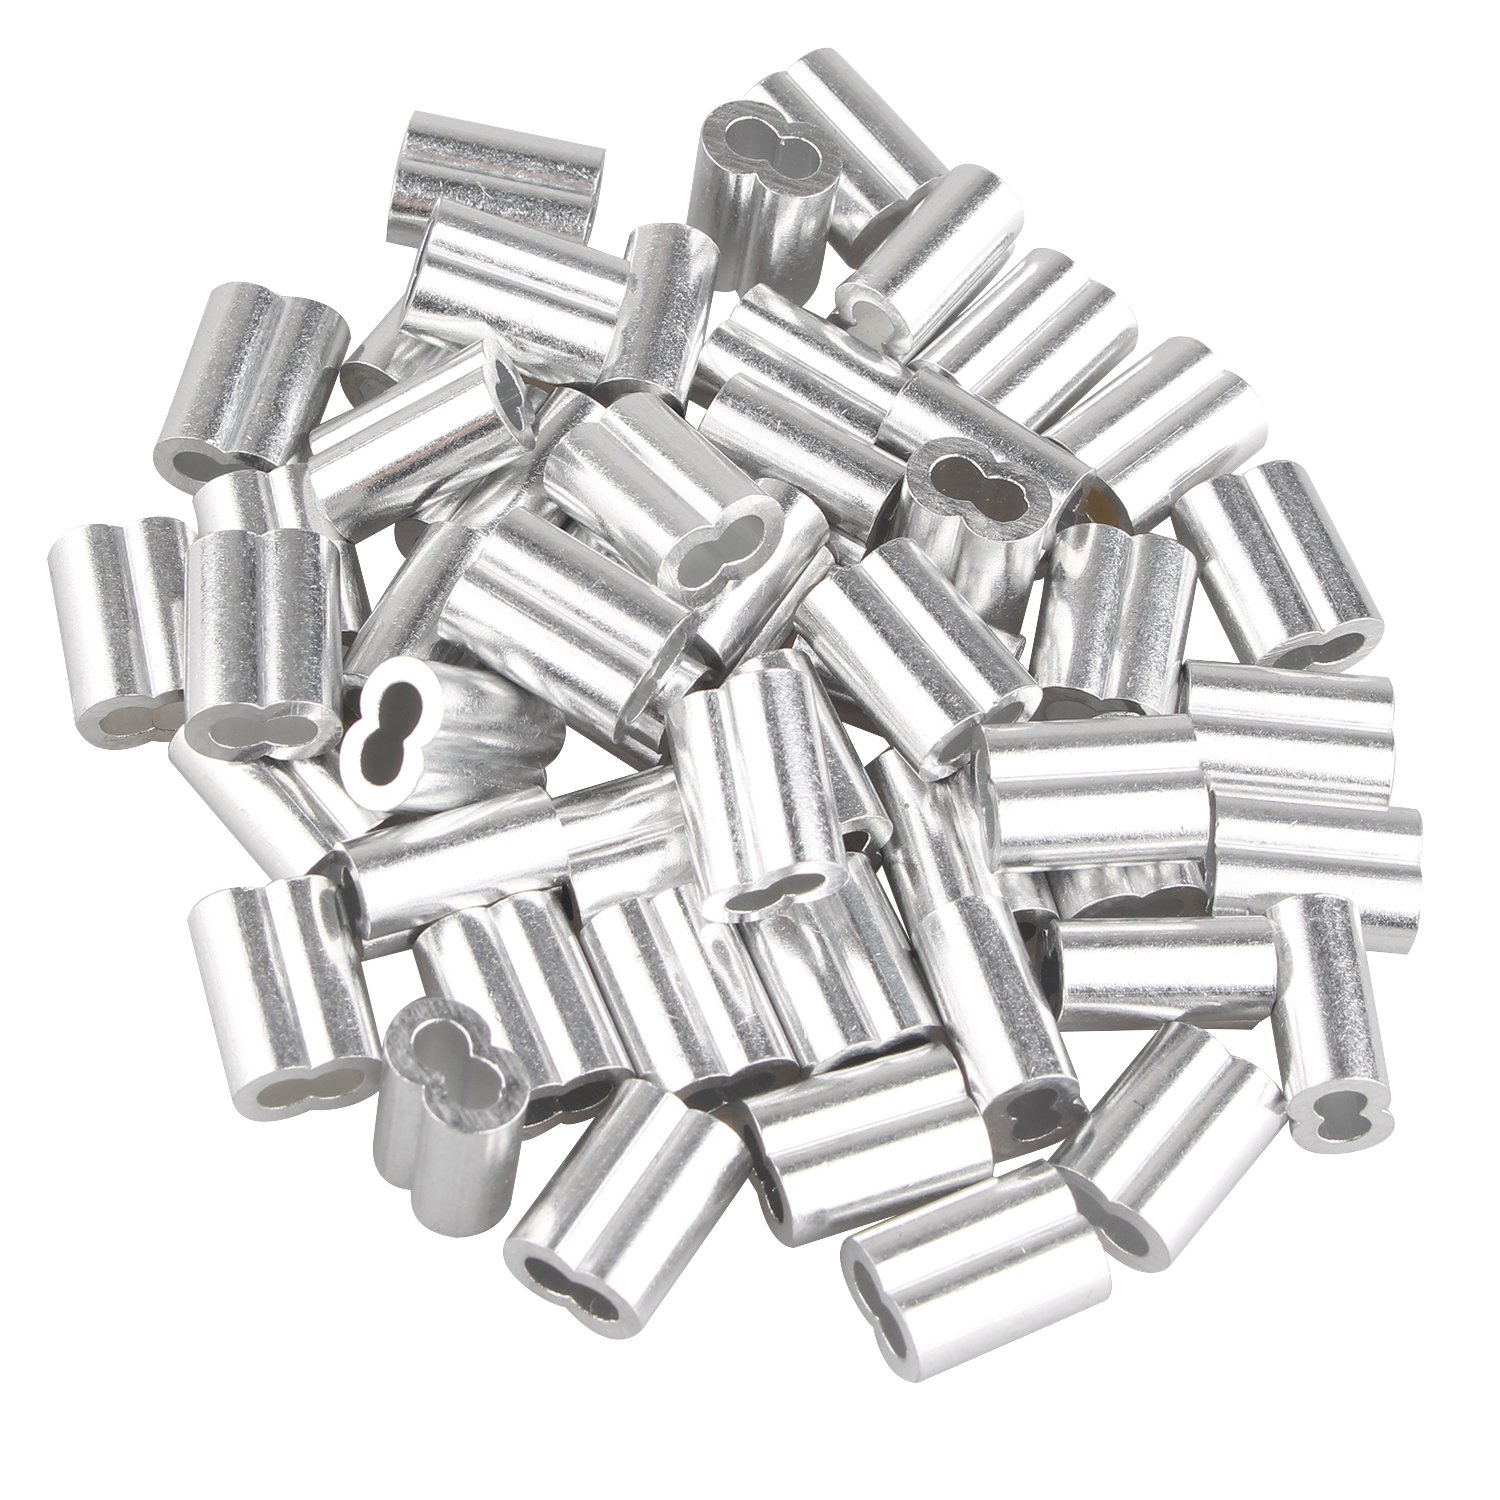 50 pcs Aluminum Crimping Loop Sleeve Clips with Double Ferrules/Holes for 3.0mm Cable Wire Rope Silver Tone Fushengda